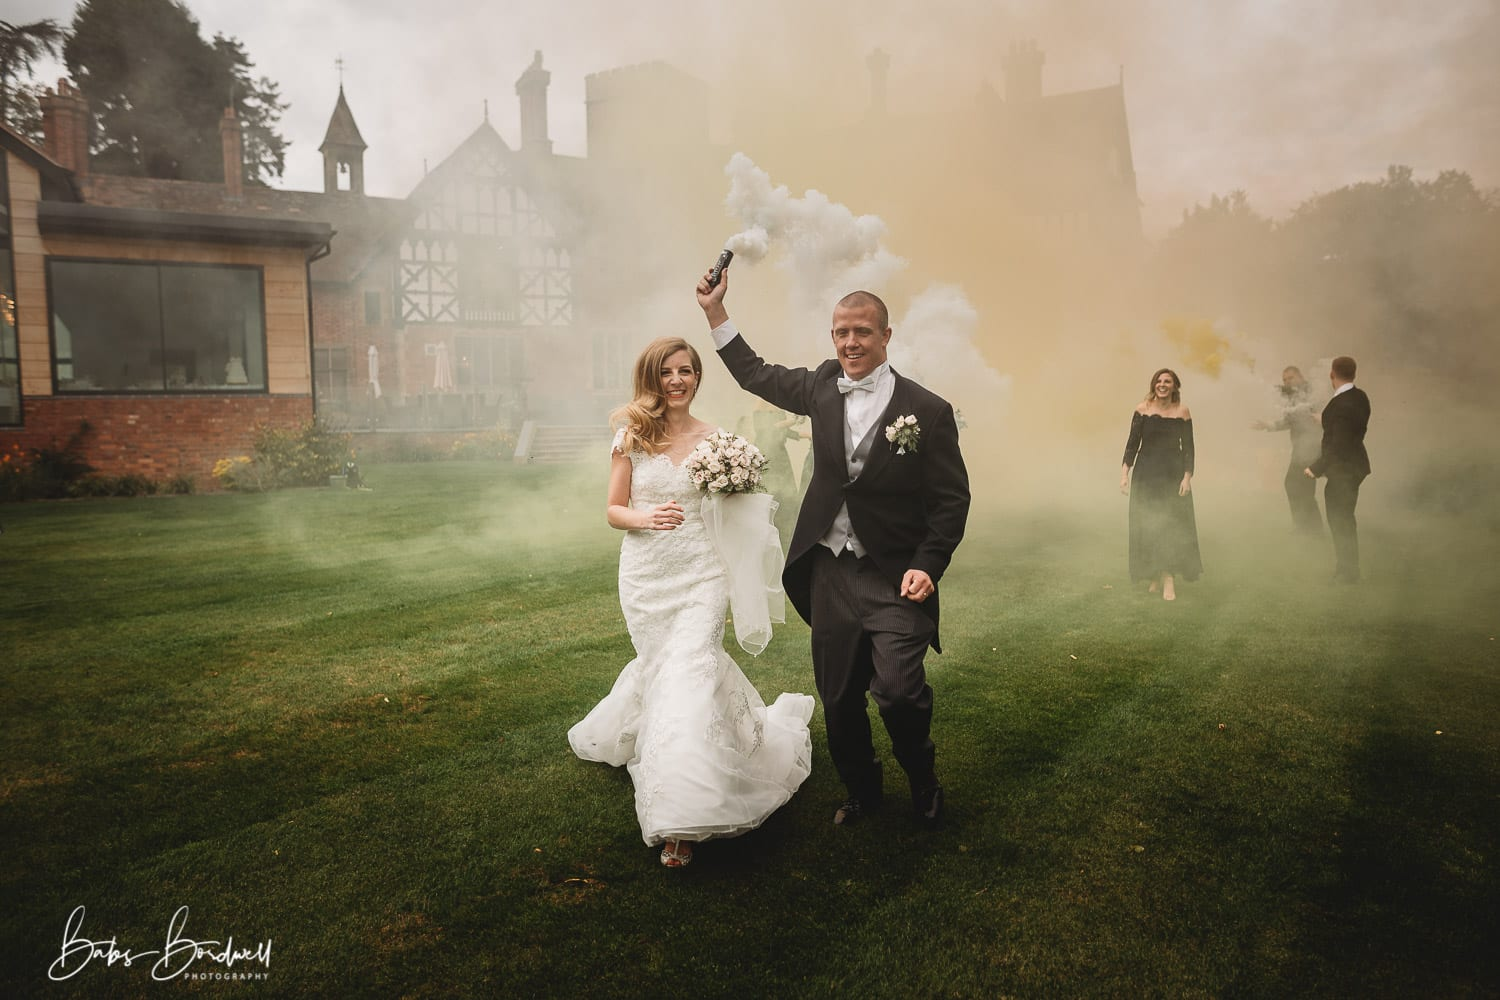 bride and groom running with smoke bombs in the groom's hand at Tyn Dwr Hall